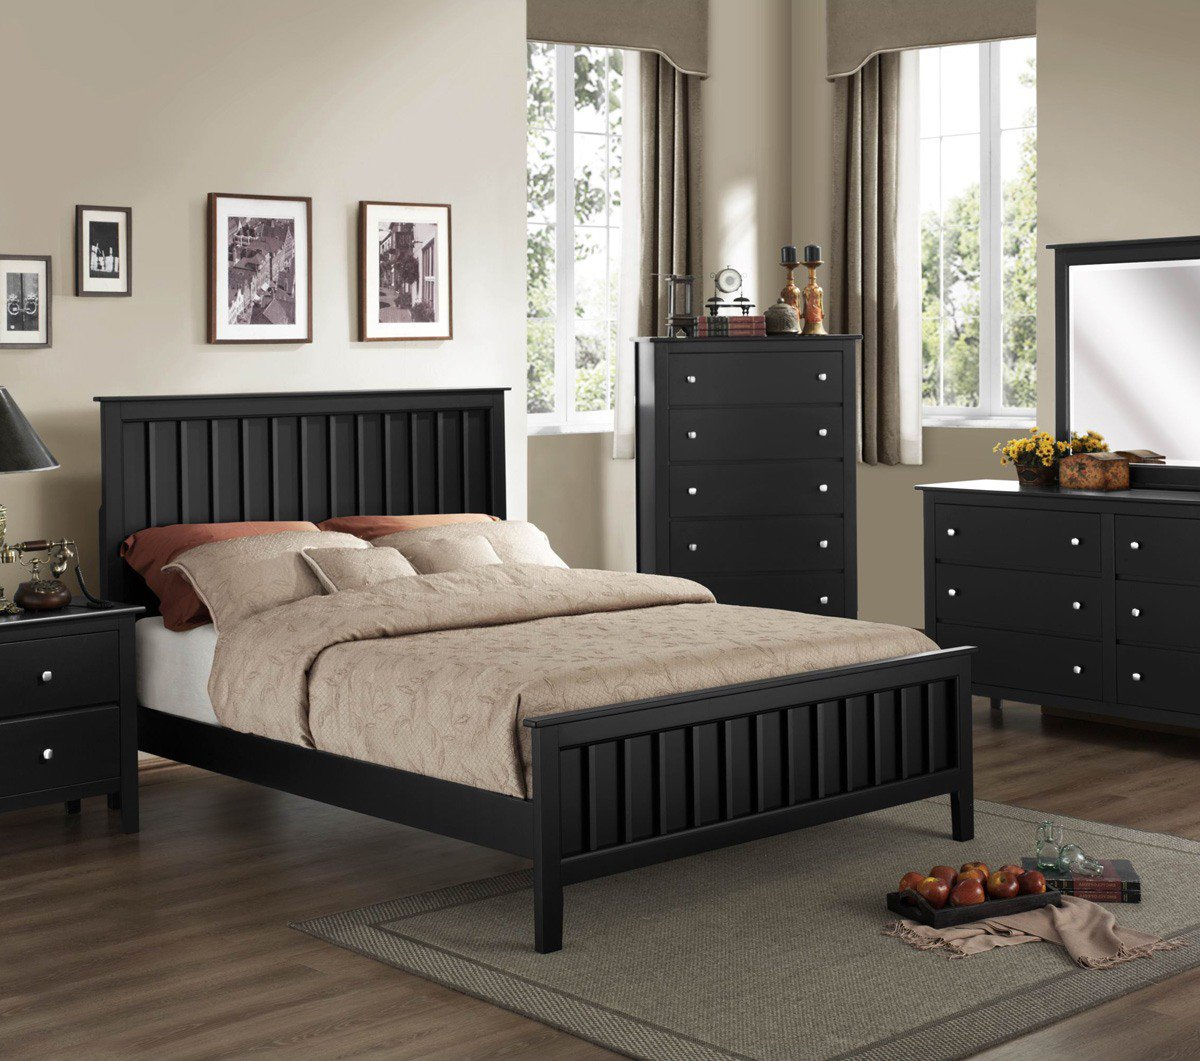 Big Bedroom: Bedroom Furniture Sets Big Lots Interior Exterior Doors